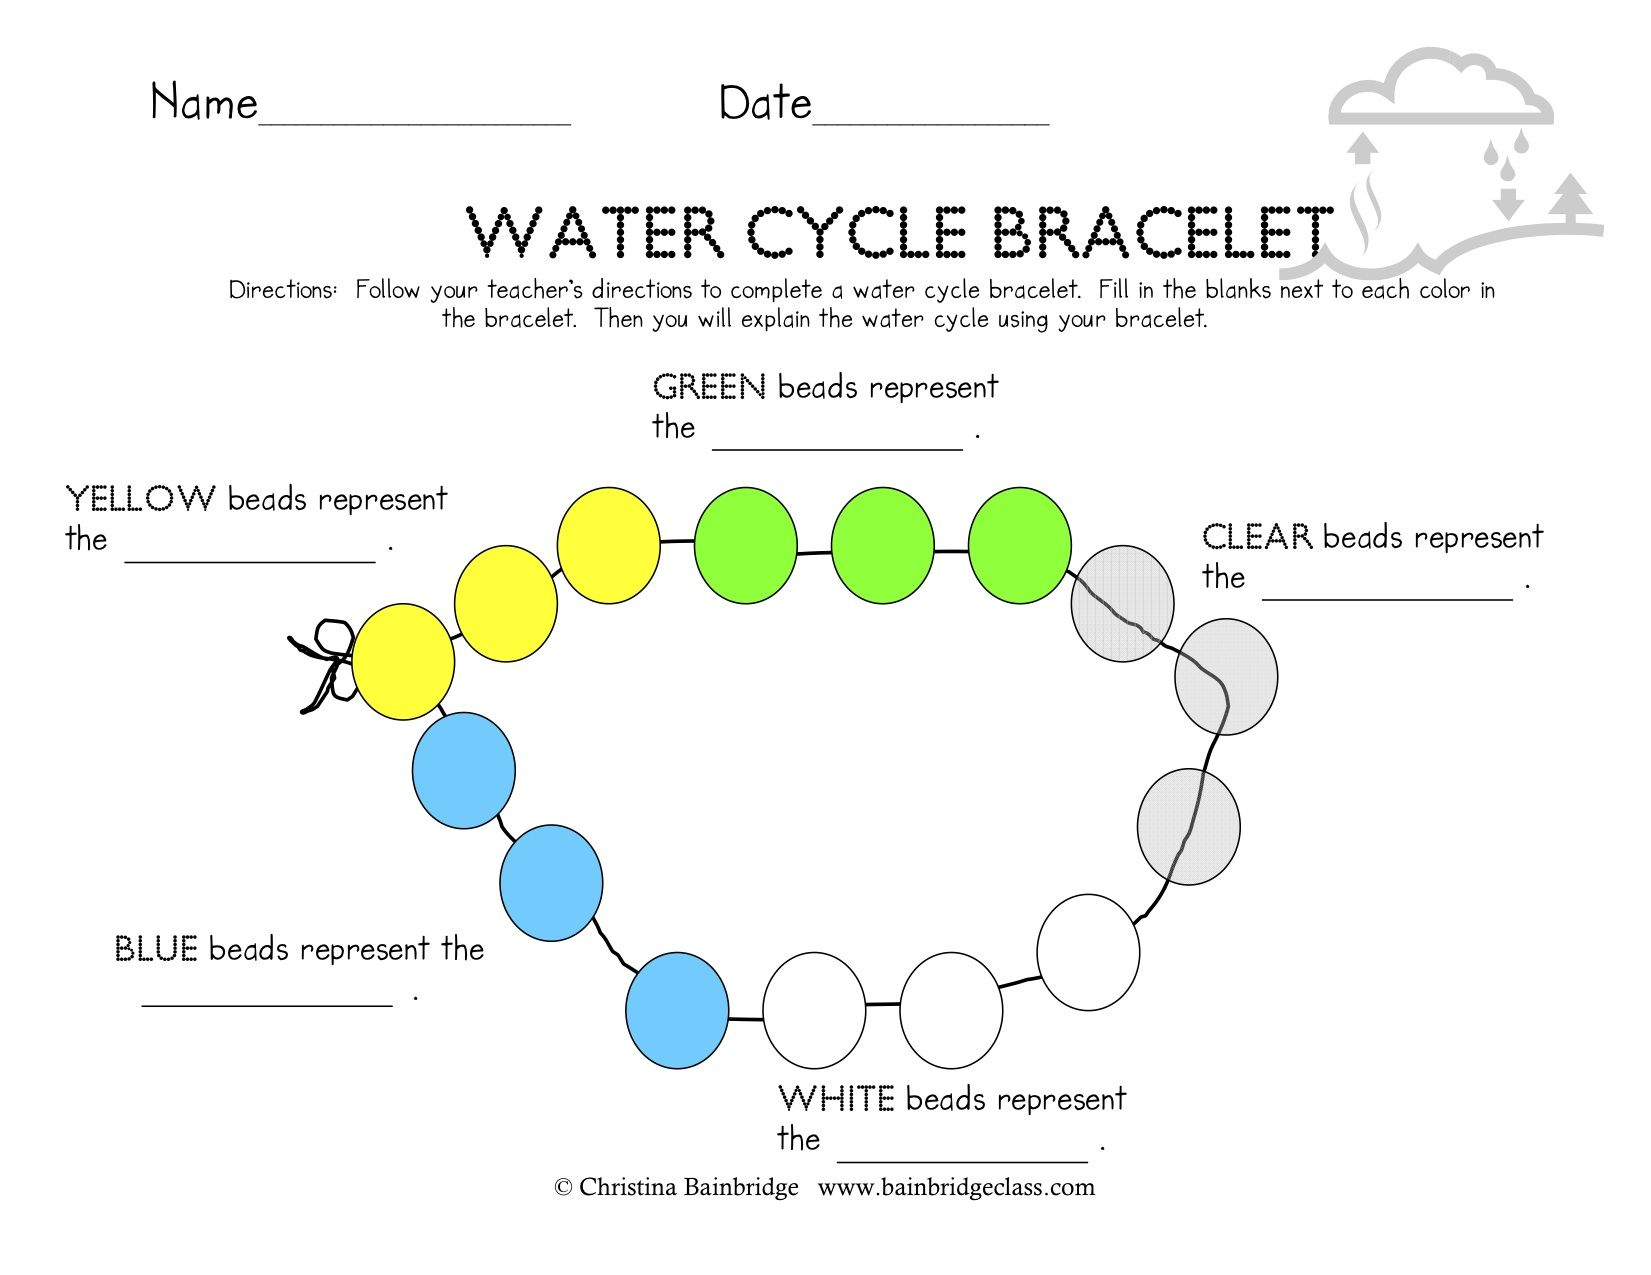 water cycle diagram with questions 1998 jeep wrangler radio wiring bracelets science pinterest teaching